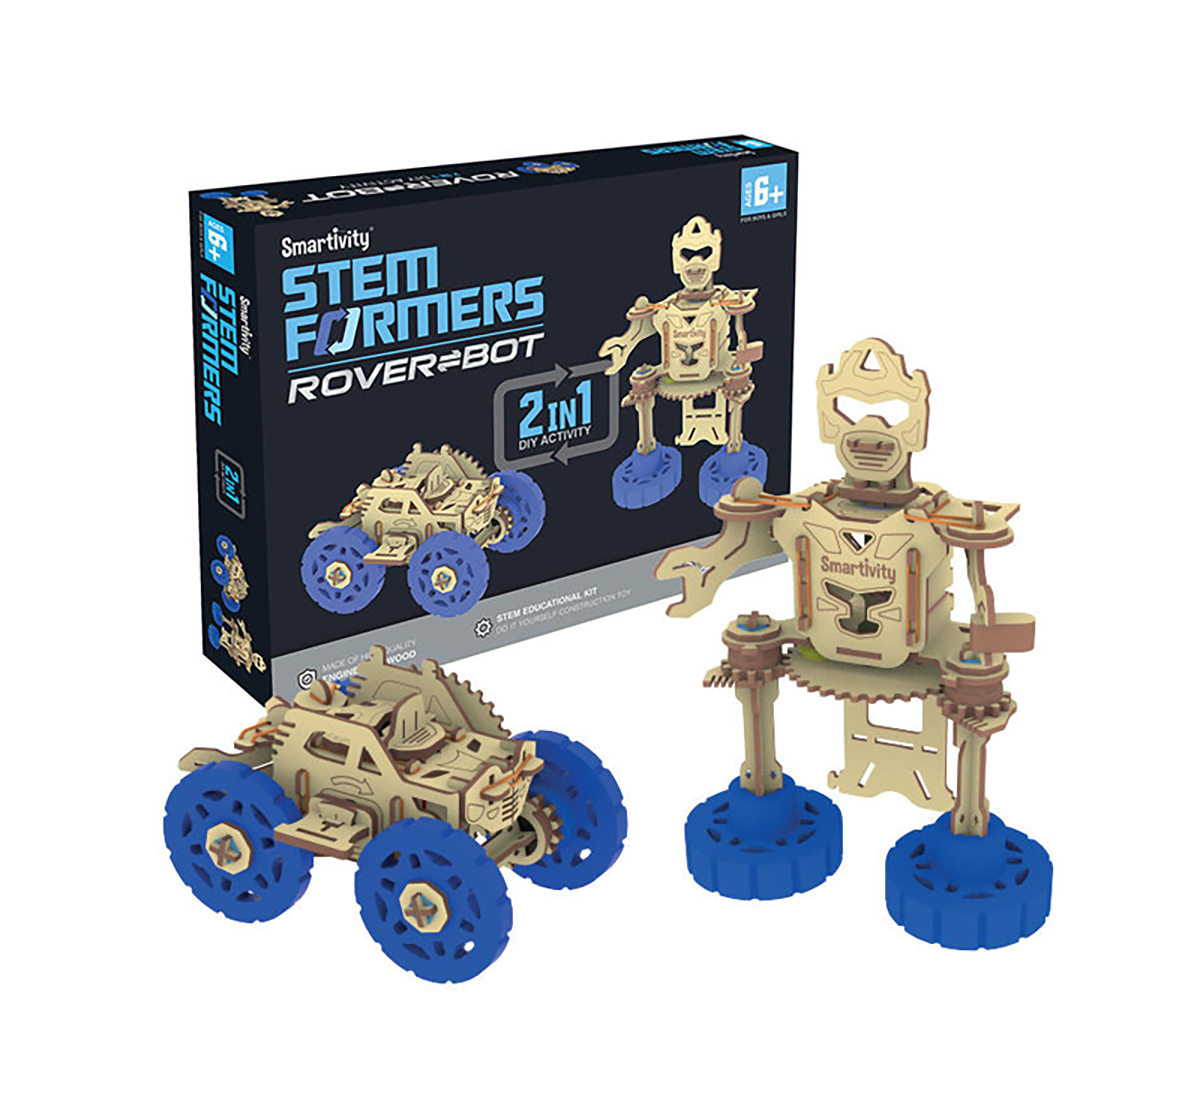 Smartivity | Smartivity Formers rover bot STEM for Kids age 6Y+